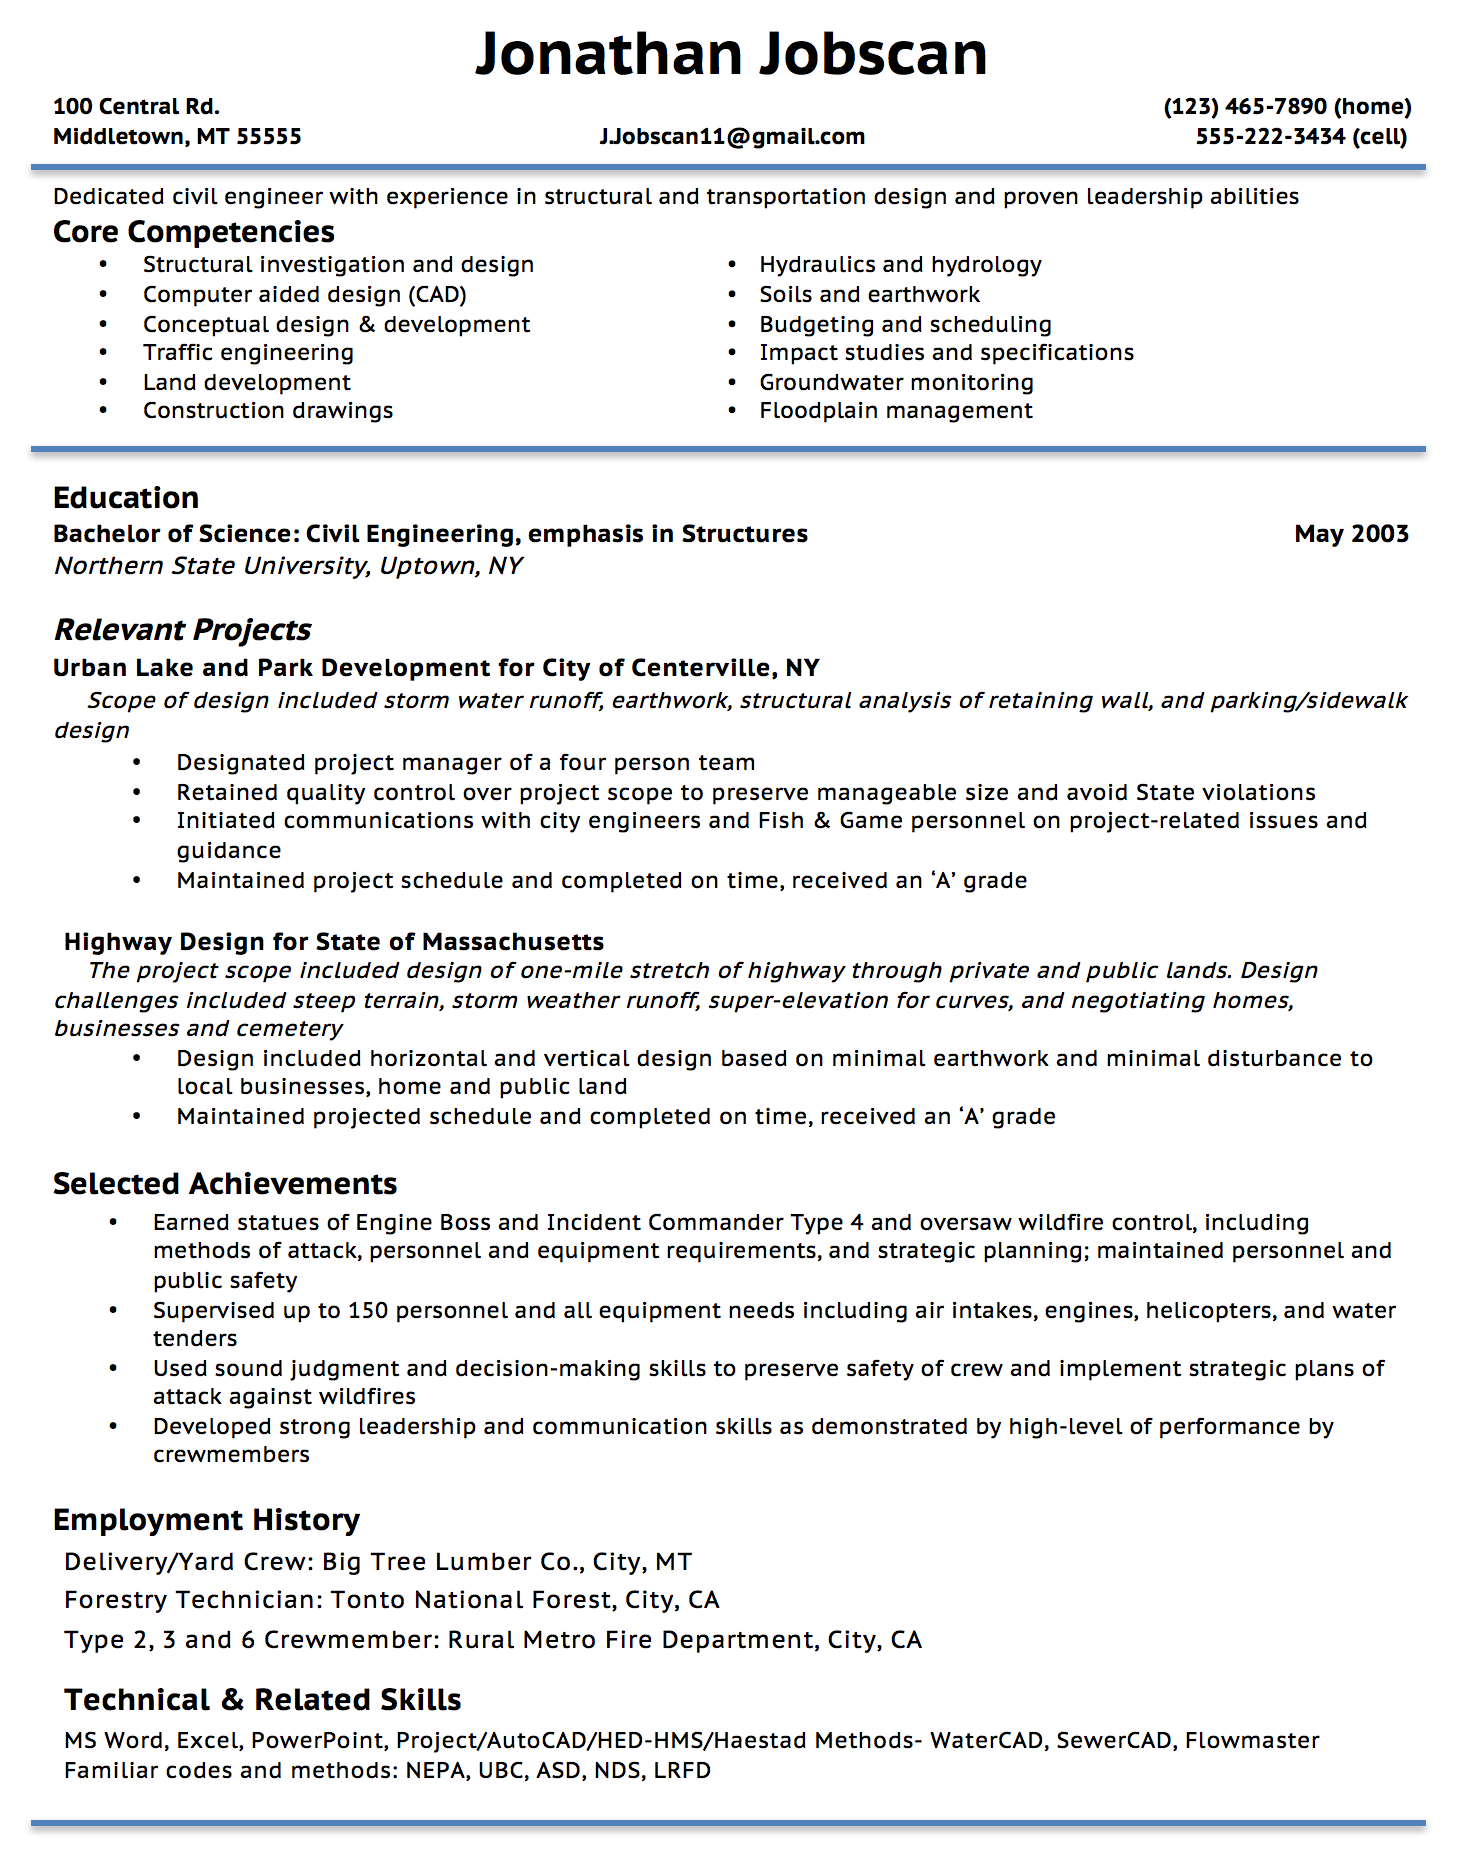 Opposenewapstandardsus  Ravishing Resume Writing Guide  Jobscan With Exciting Example Of A Functional Resume Format With Astonishing Resume For A Stay At Home Mom Also How To Make Resume On Word  In Addition How To Make Your Resume Better And Construction Company Resume As Well As Template For Resume Microsoft Word Additionally Harry Potter Resume From Jobscanco With Opposenewapstandardsus  Exciting Resume Writing Guide  Jobscan With Astonishing Example Of A Functional Resume Format And Ravishing Resume For A Stay At Home Mom Also How To Make Resume On Word  In Addition How To Make Your Resume Better From Jobscanco